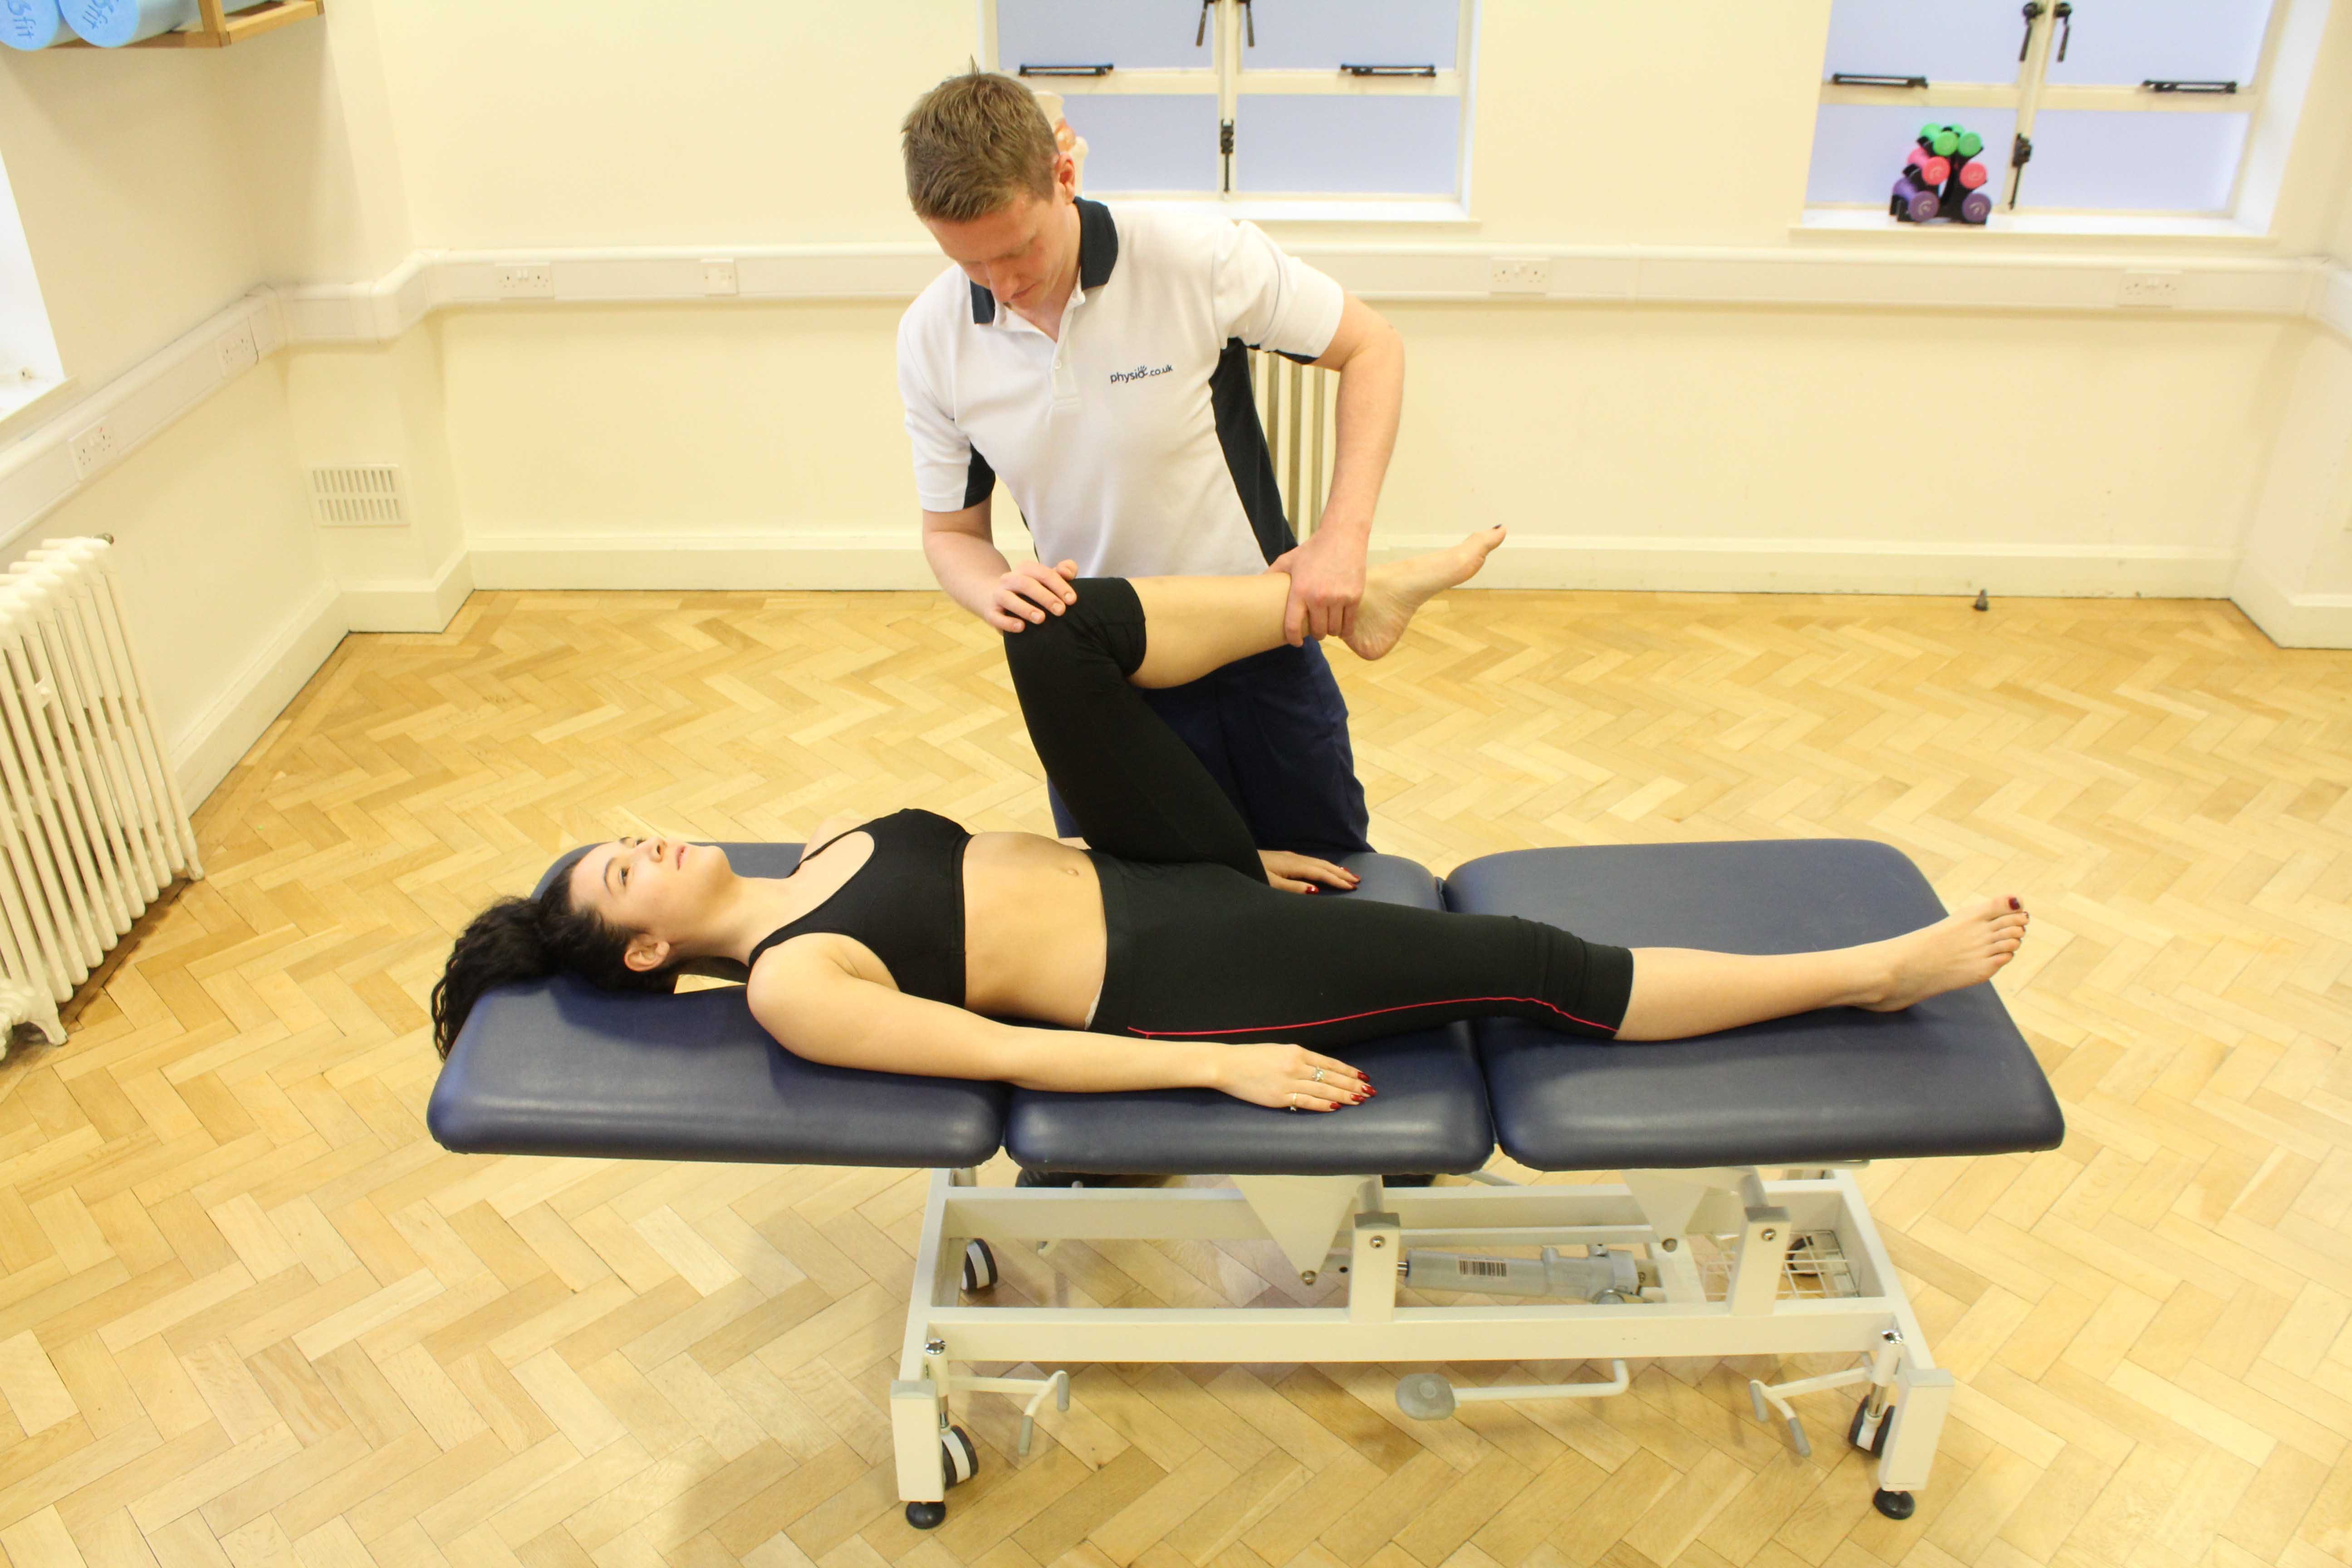 Knee mobility and strength tests condurcted by an experienced physiotherapist